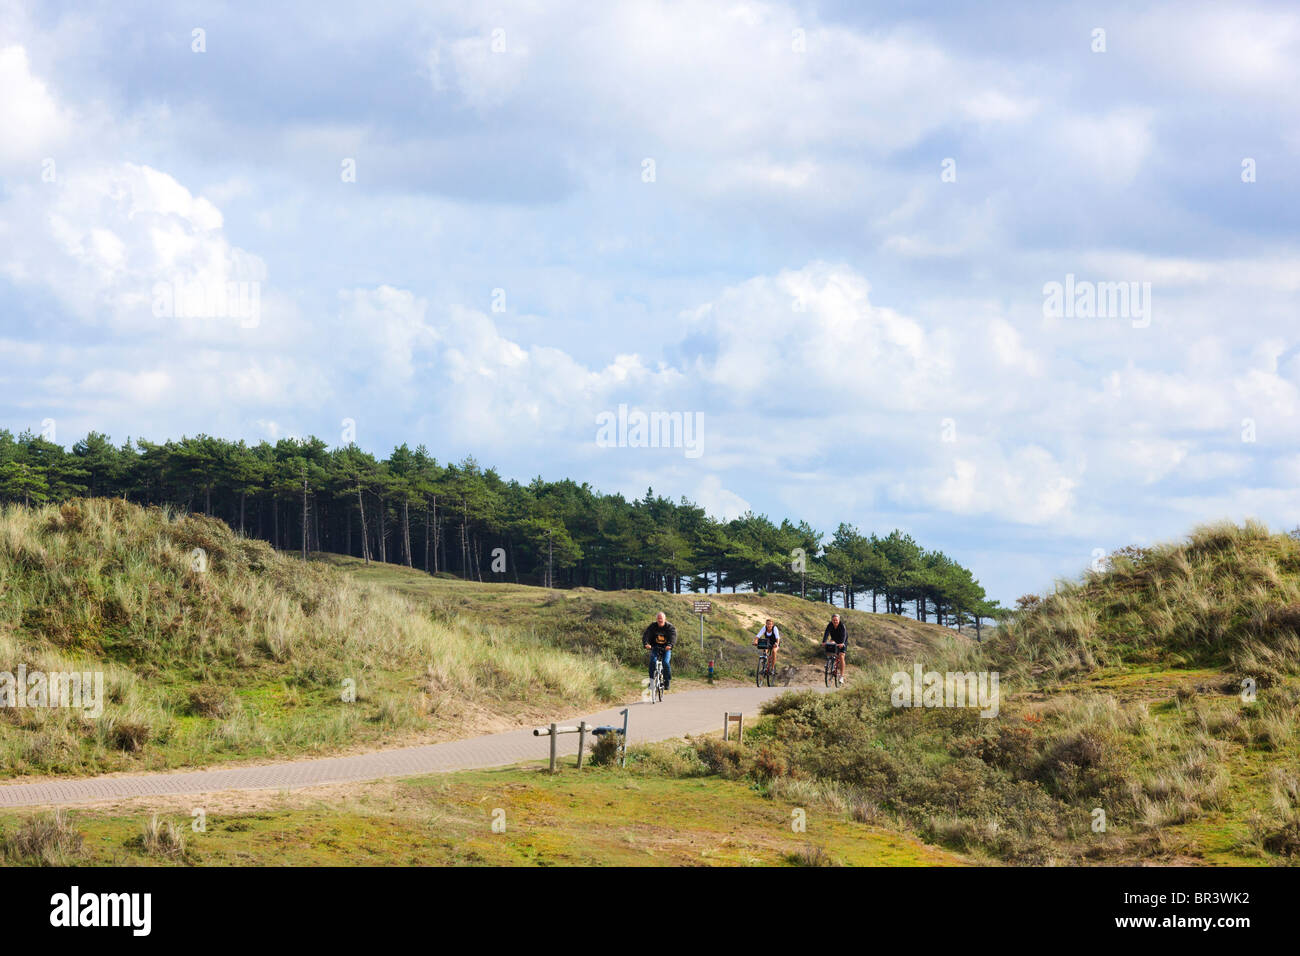 Bicycle path in the Kennemerduinen, the central part of South Kennemerland National Park nature reserve in the Netherlands. - Stock Image